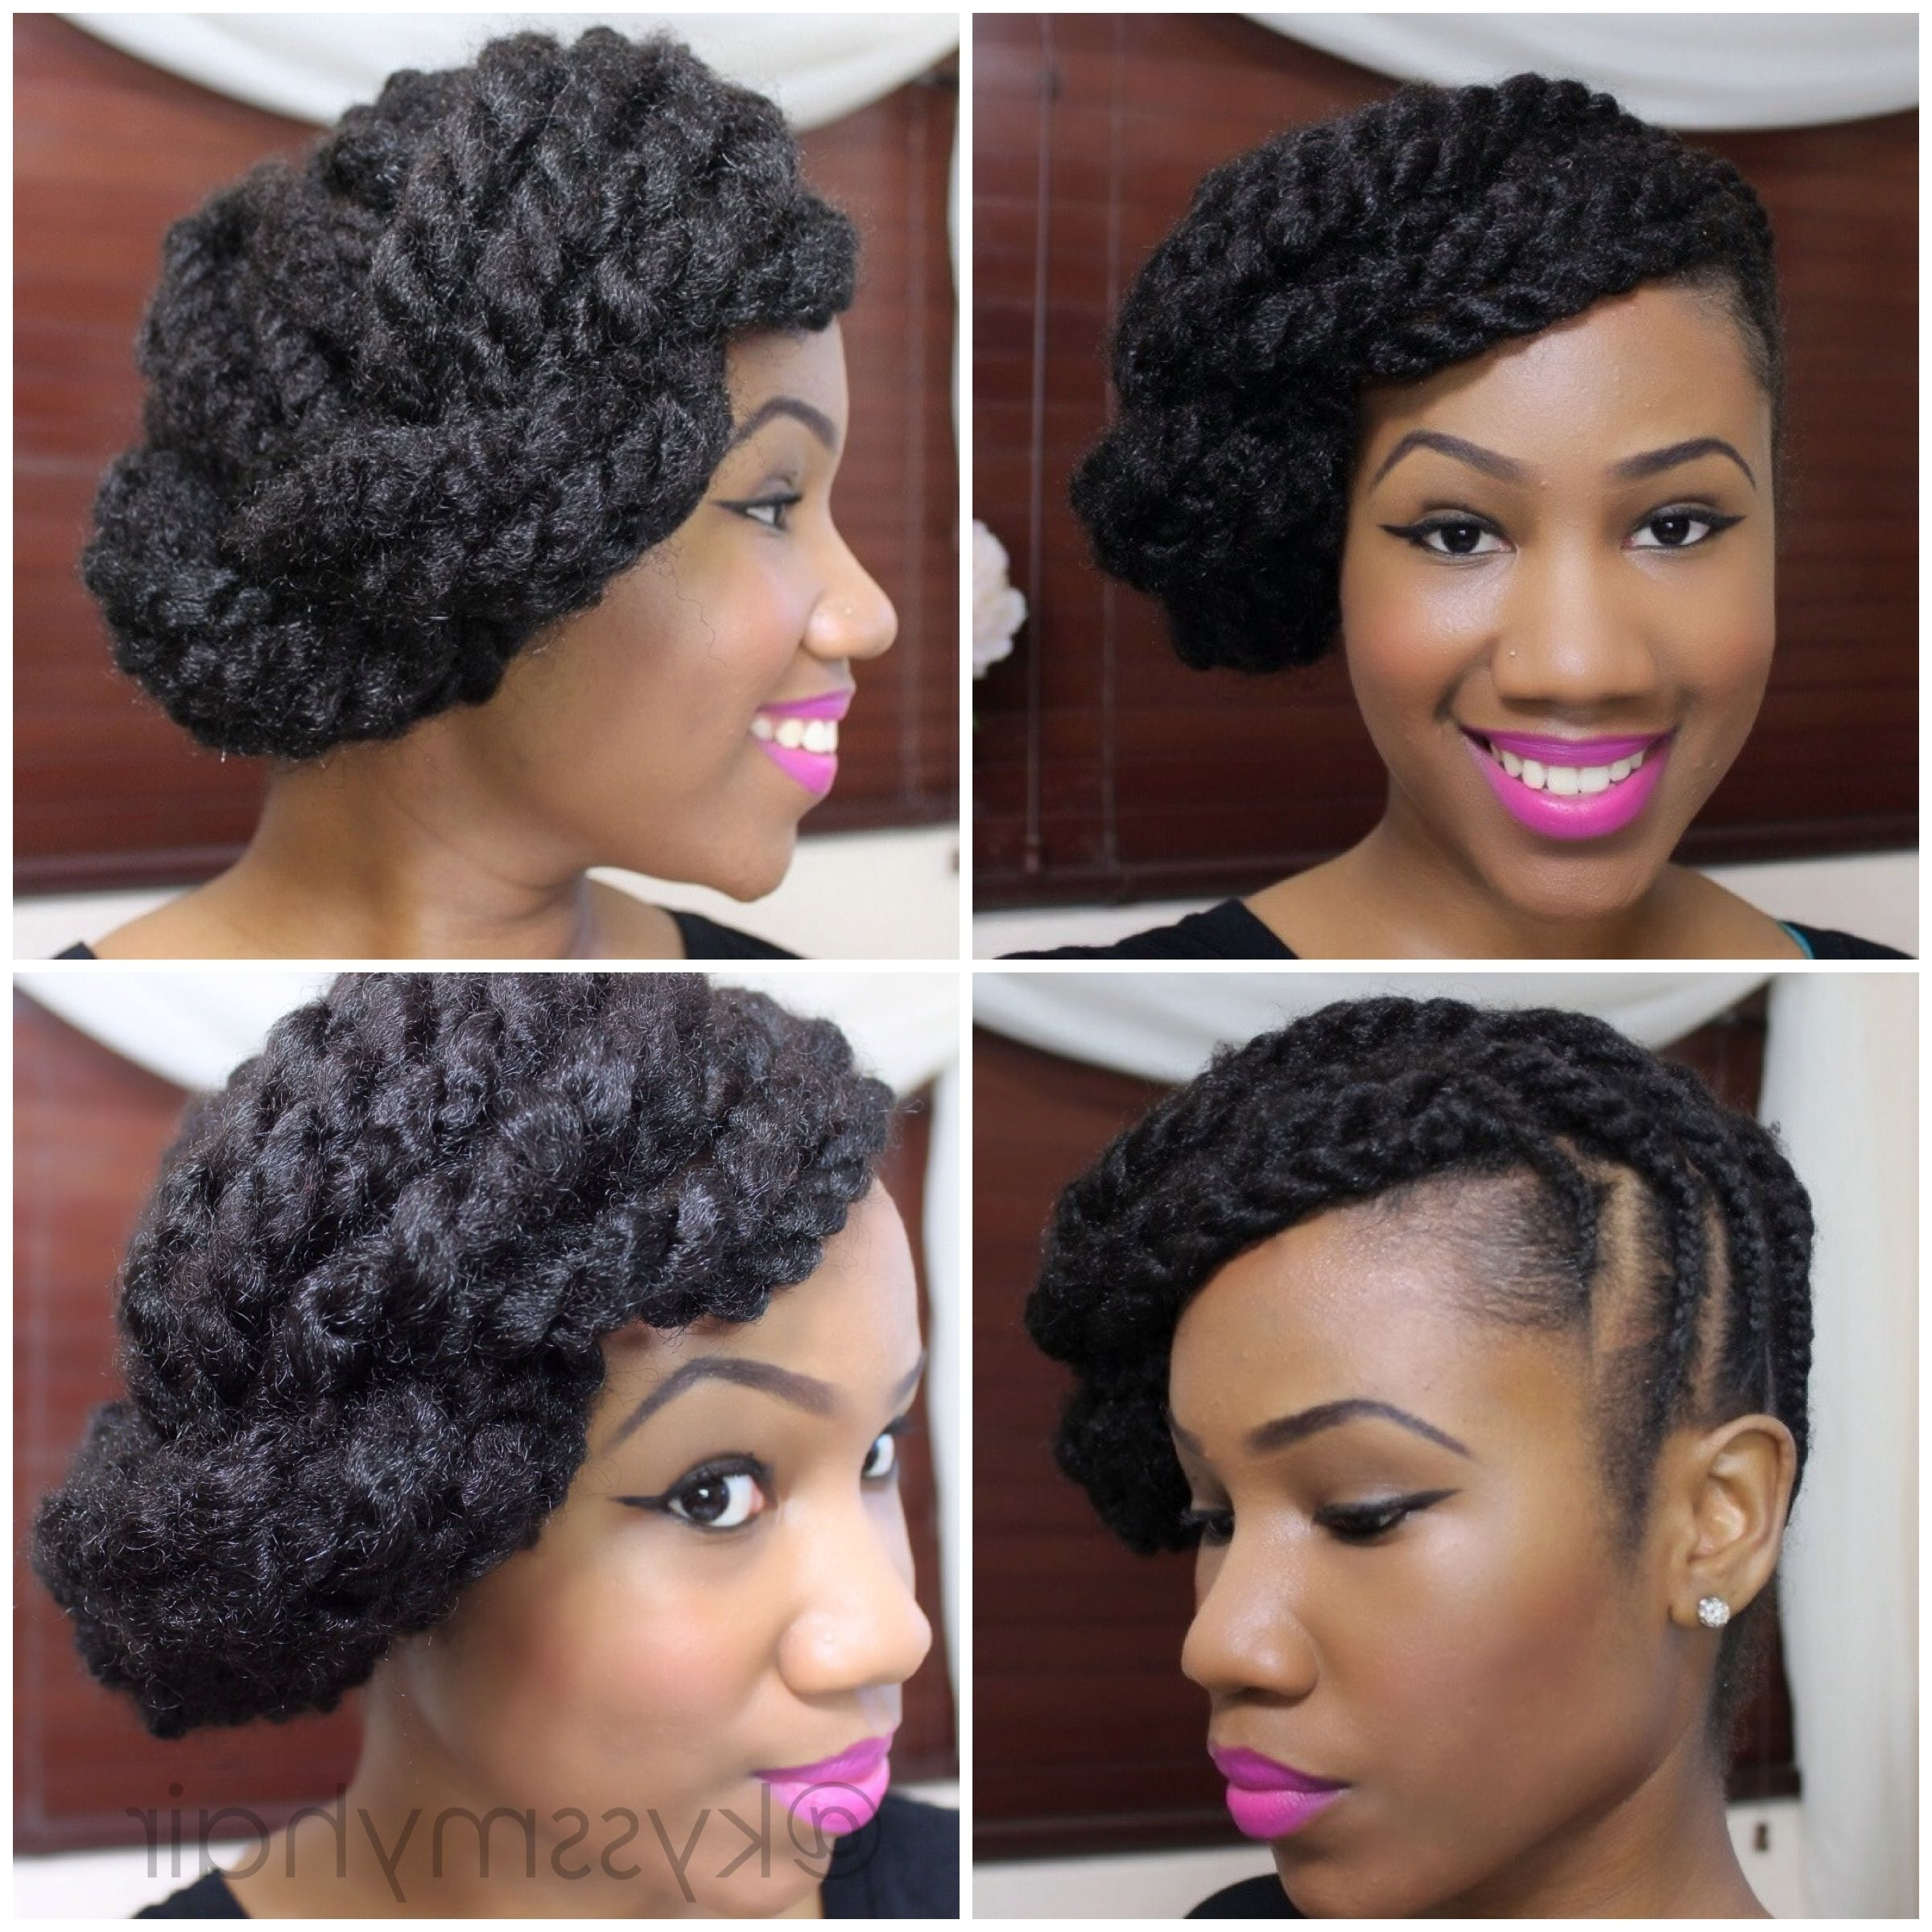 Photo Gallery Of Braided Updo Hairstyles For Natural Hair Viewing 7